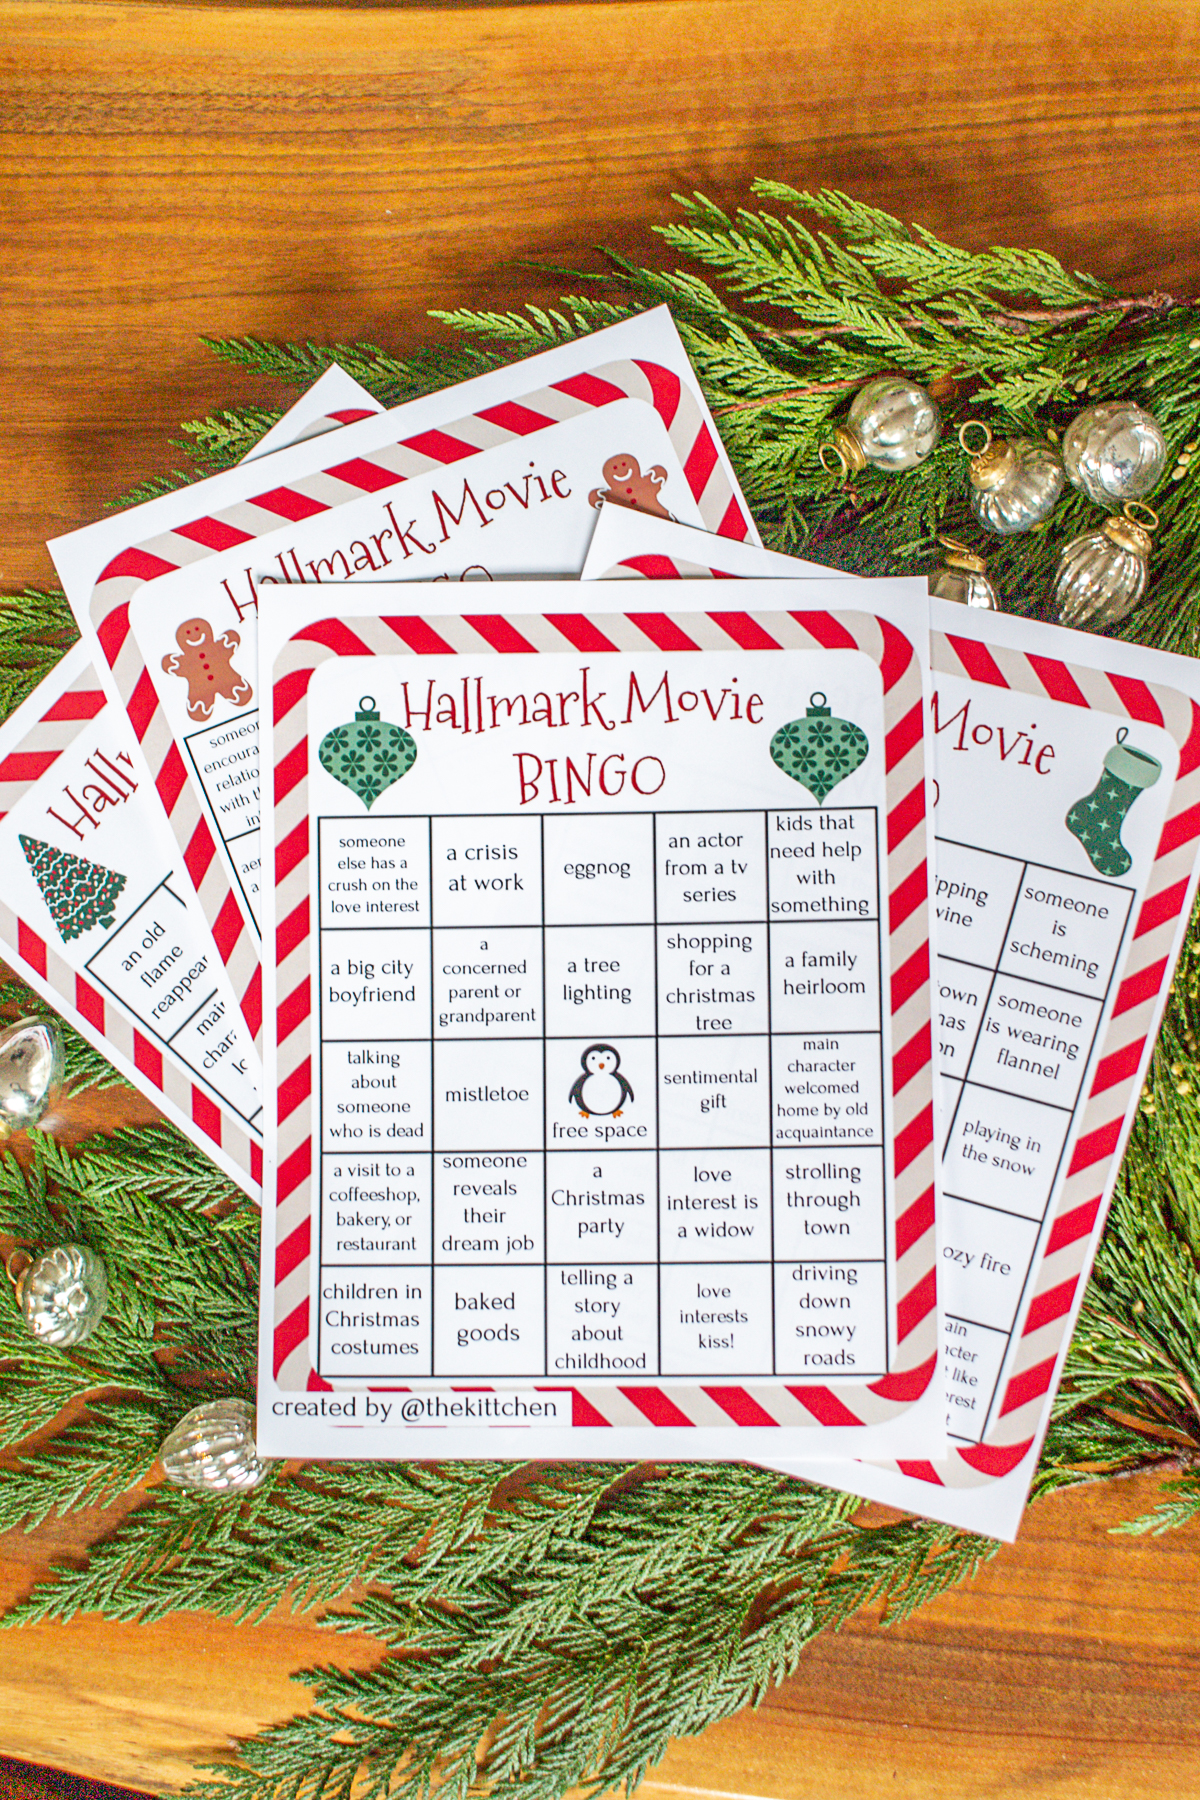 Hallmark Movie Bingo